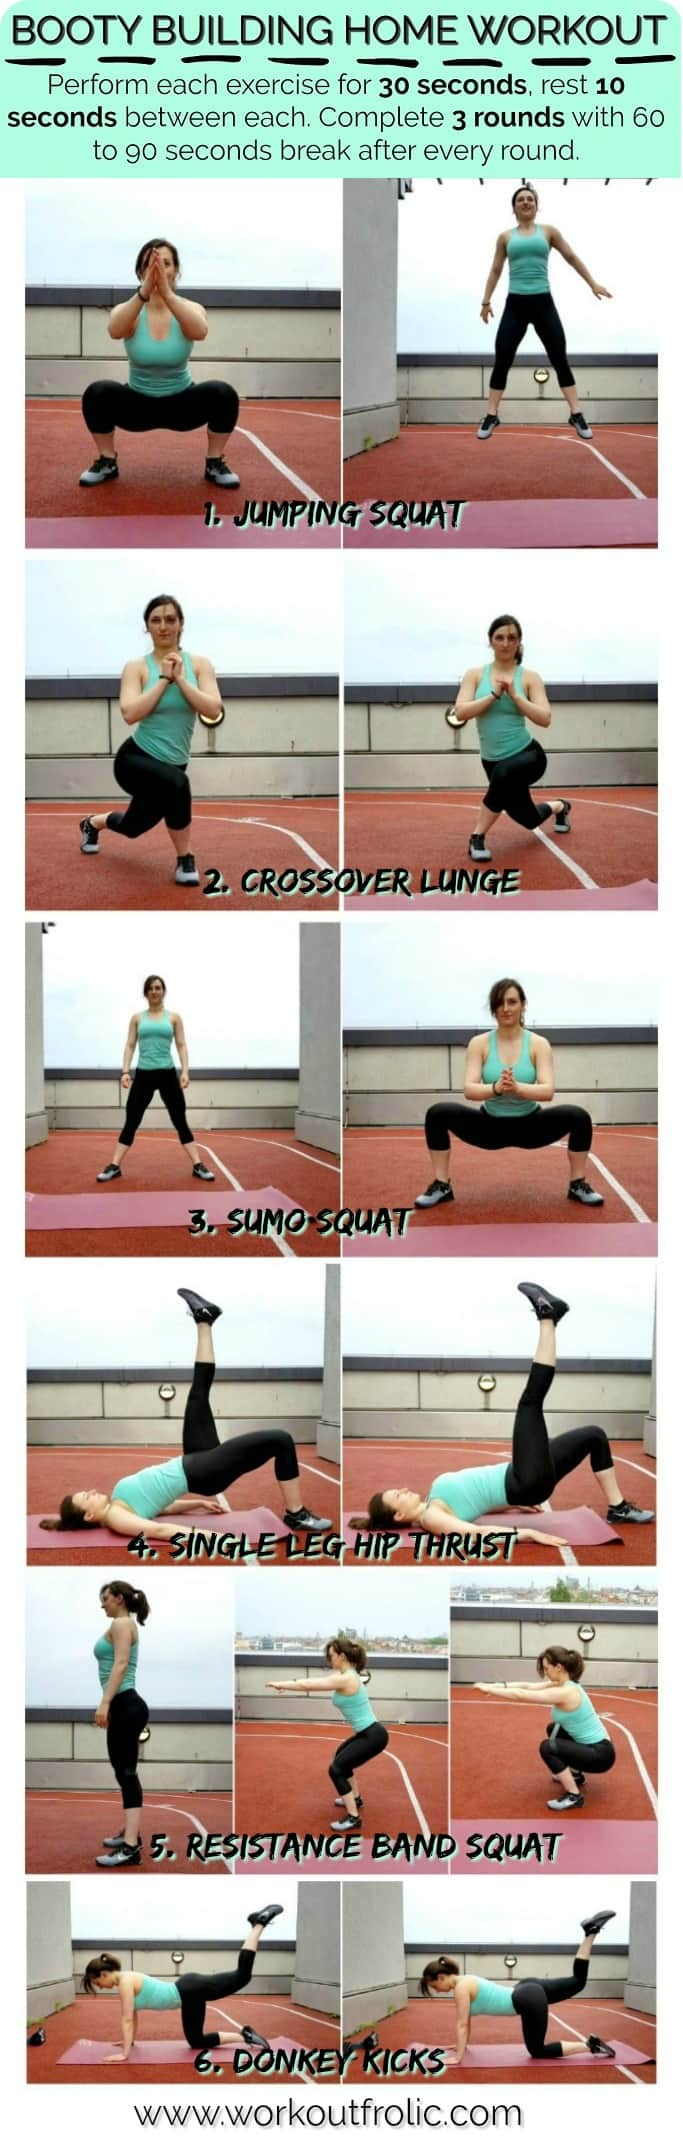 A collage depicting a glute bodyweight workout performed by a fit girl.